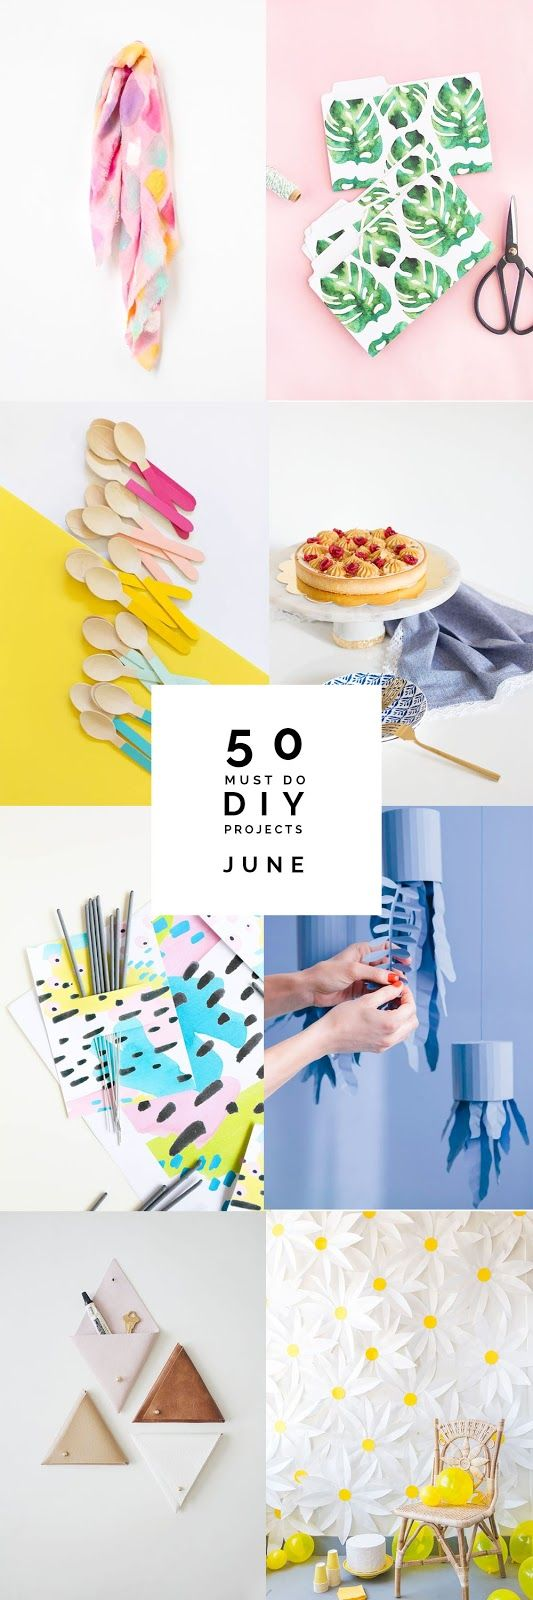 Comment on 50 Must do DIY's | June by Tet | Drawn to DIY